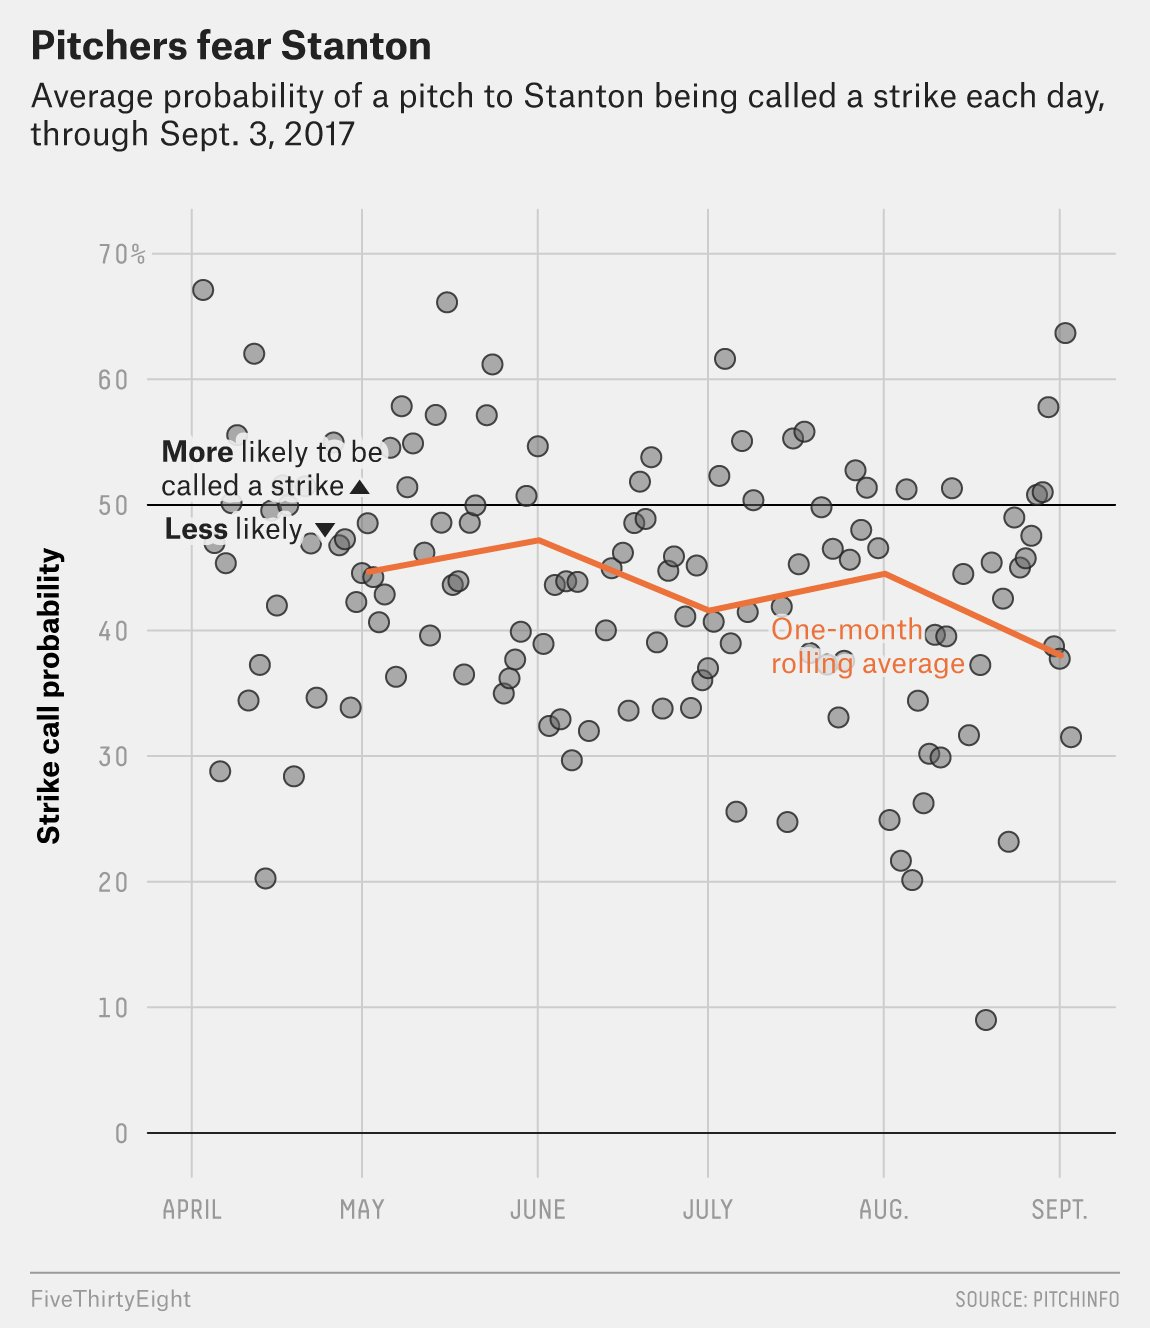 Giancarlo Stanton has played at a Bonds-ian level as of late. https://t.co/QLparfXwUV https://t.co/BdhQTU34tZ